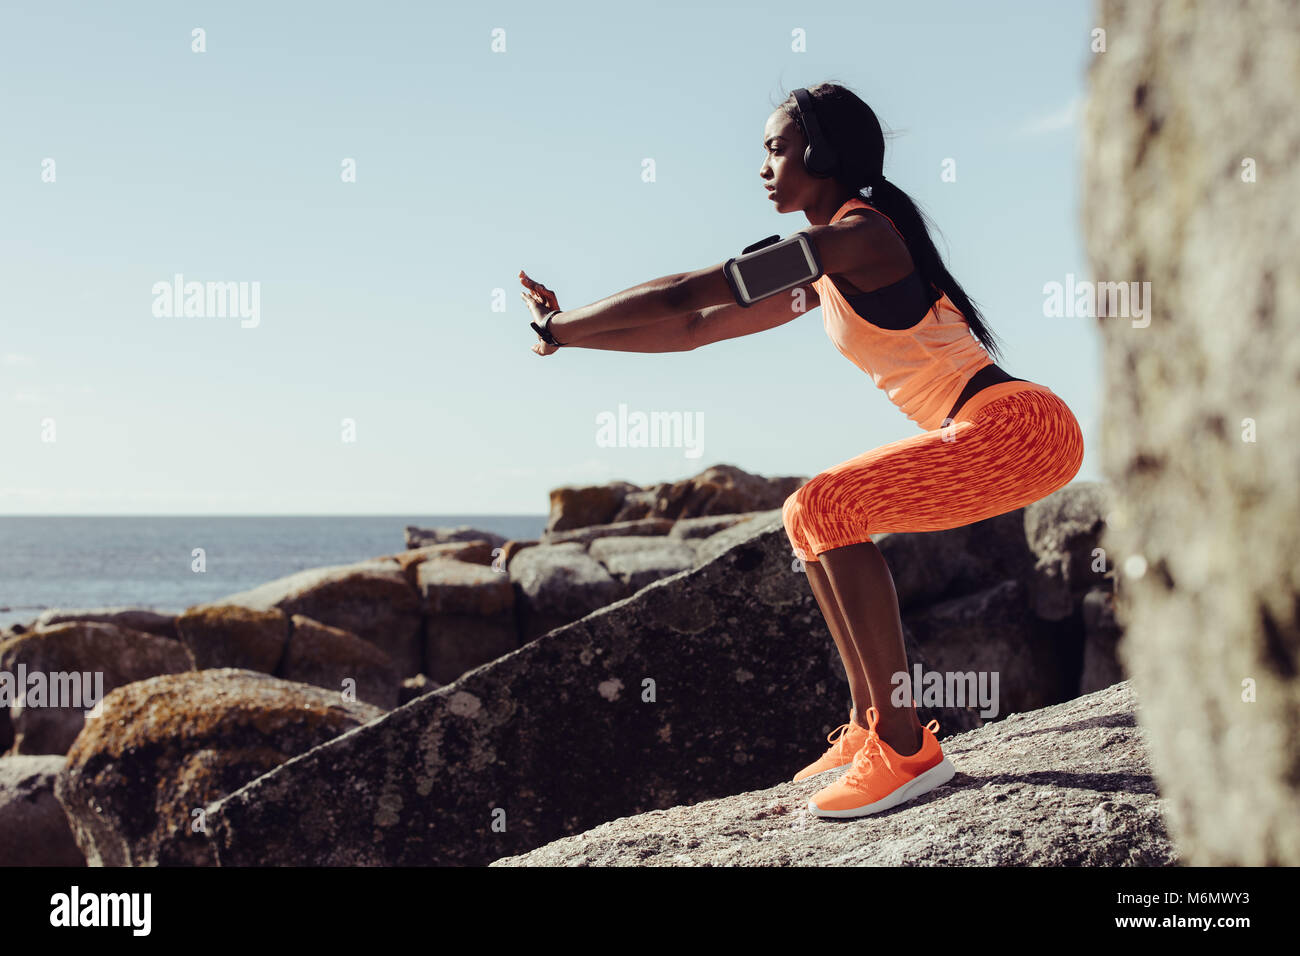 Woman runner doing stretching exercises. Woman doing warm up stretches on rocks at the beach. - Stock Image